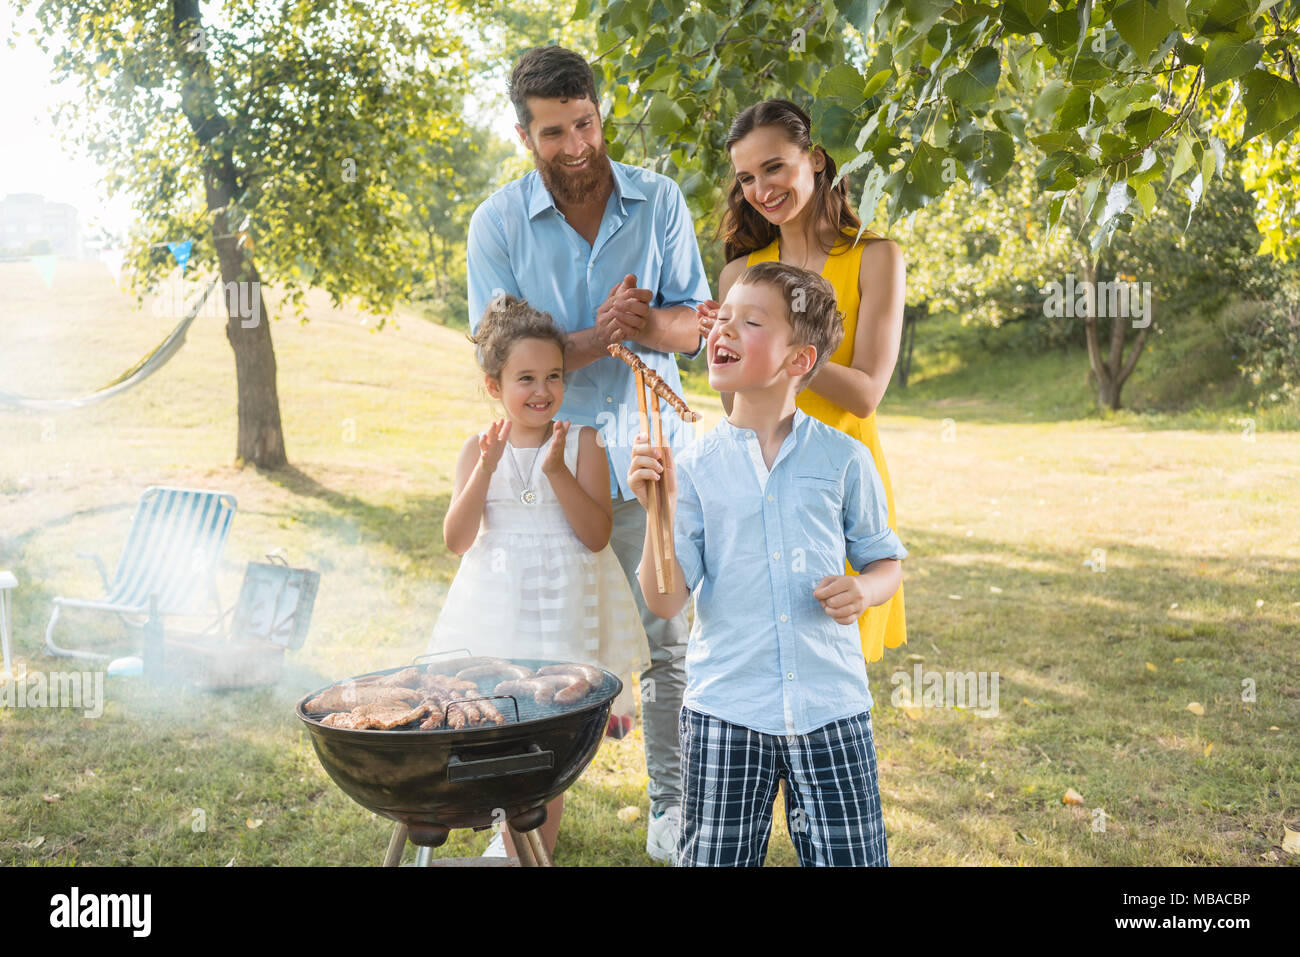 Portrait of happy family with two children outdoors Stock Photo